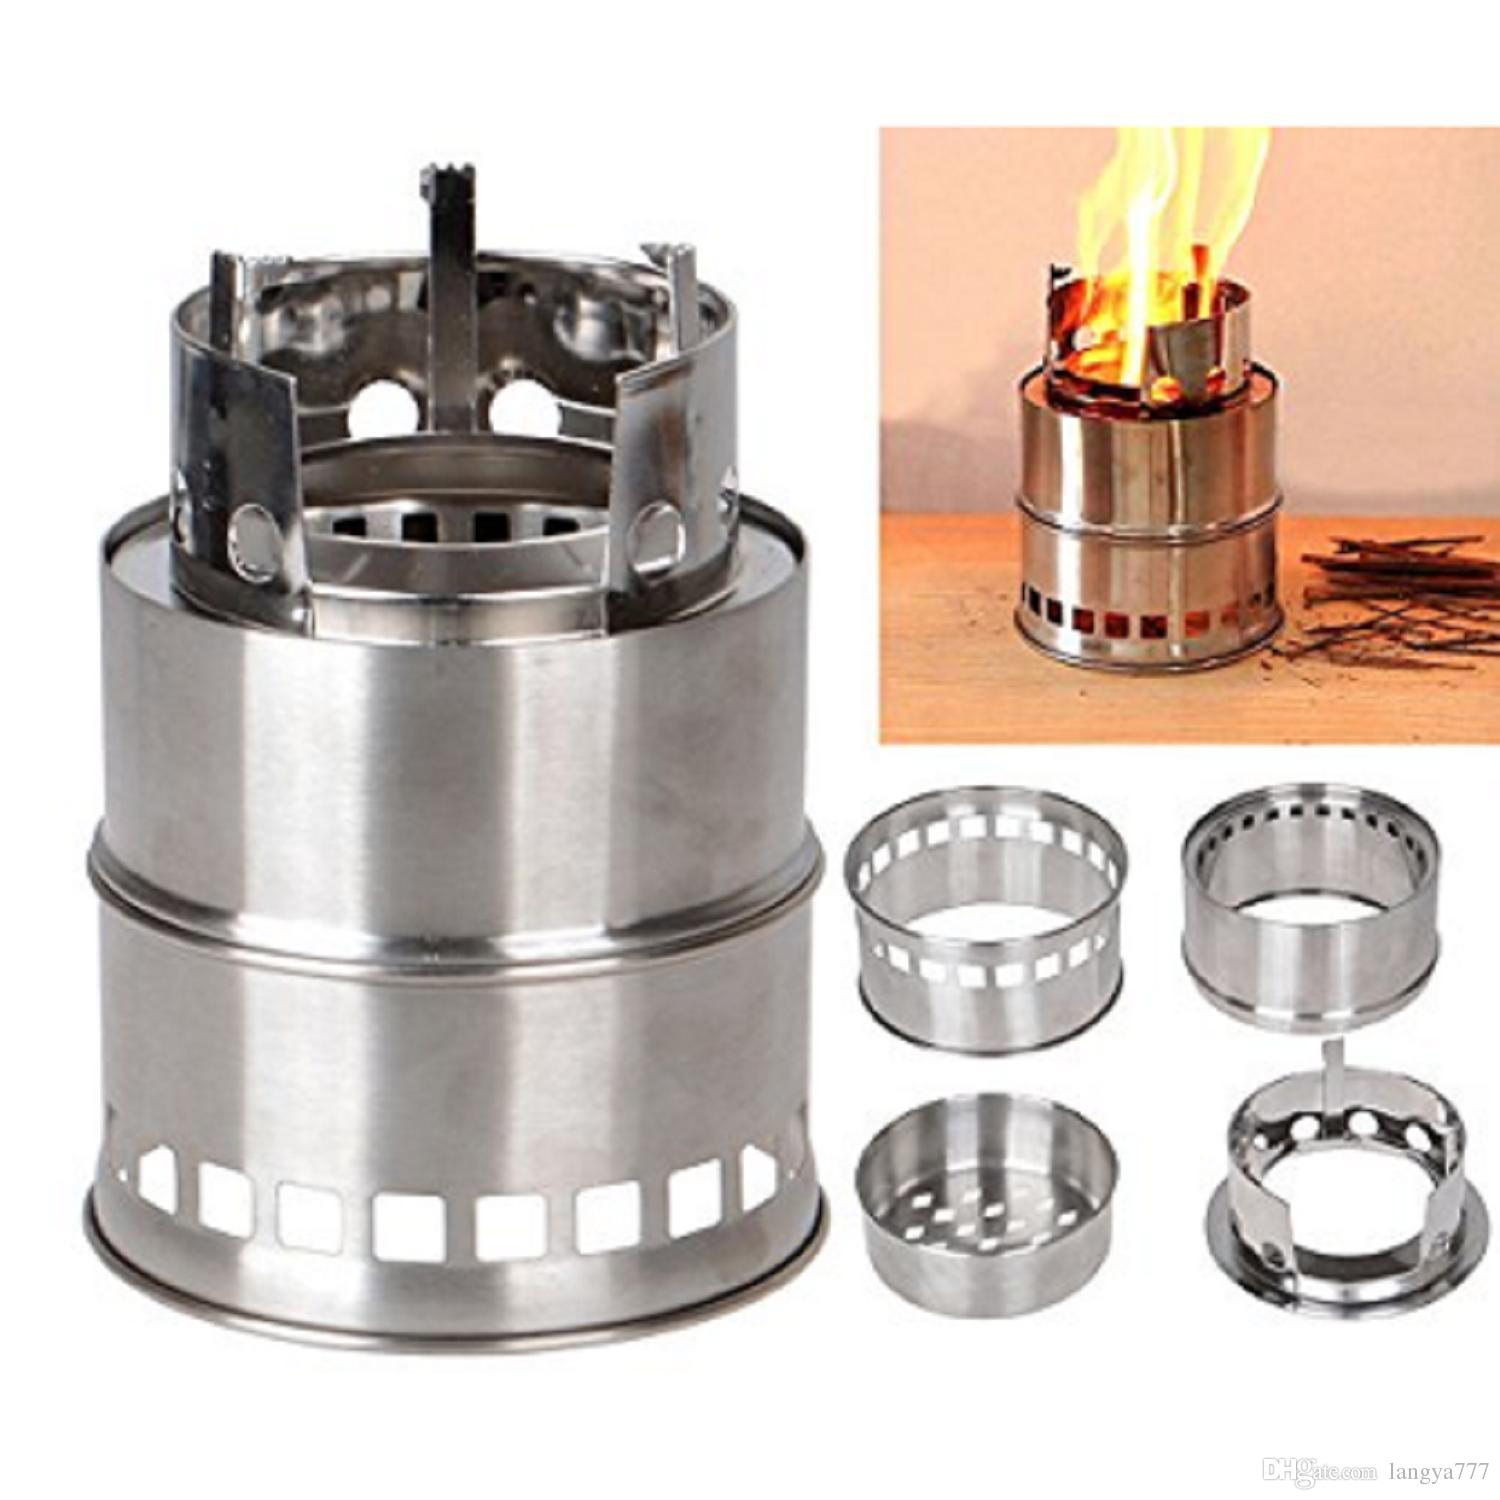 Lightweight Backpacking Stoves: Portable Stainless Steel Camping Stove Lightweight